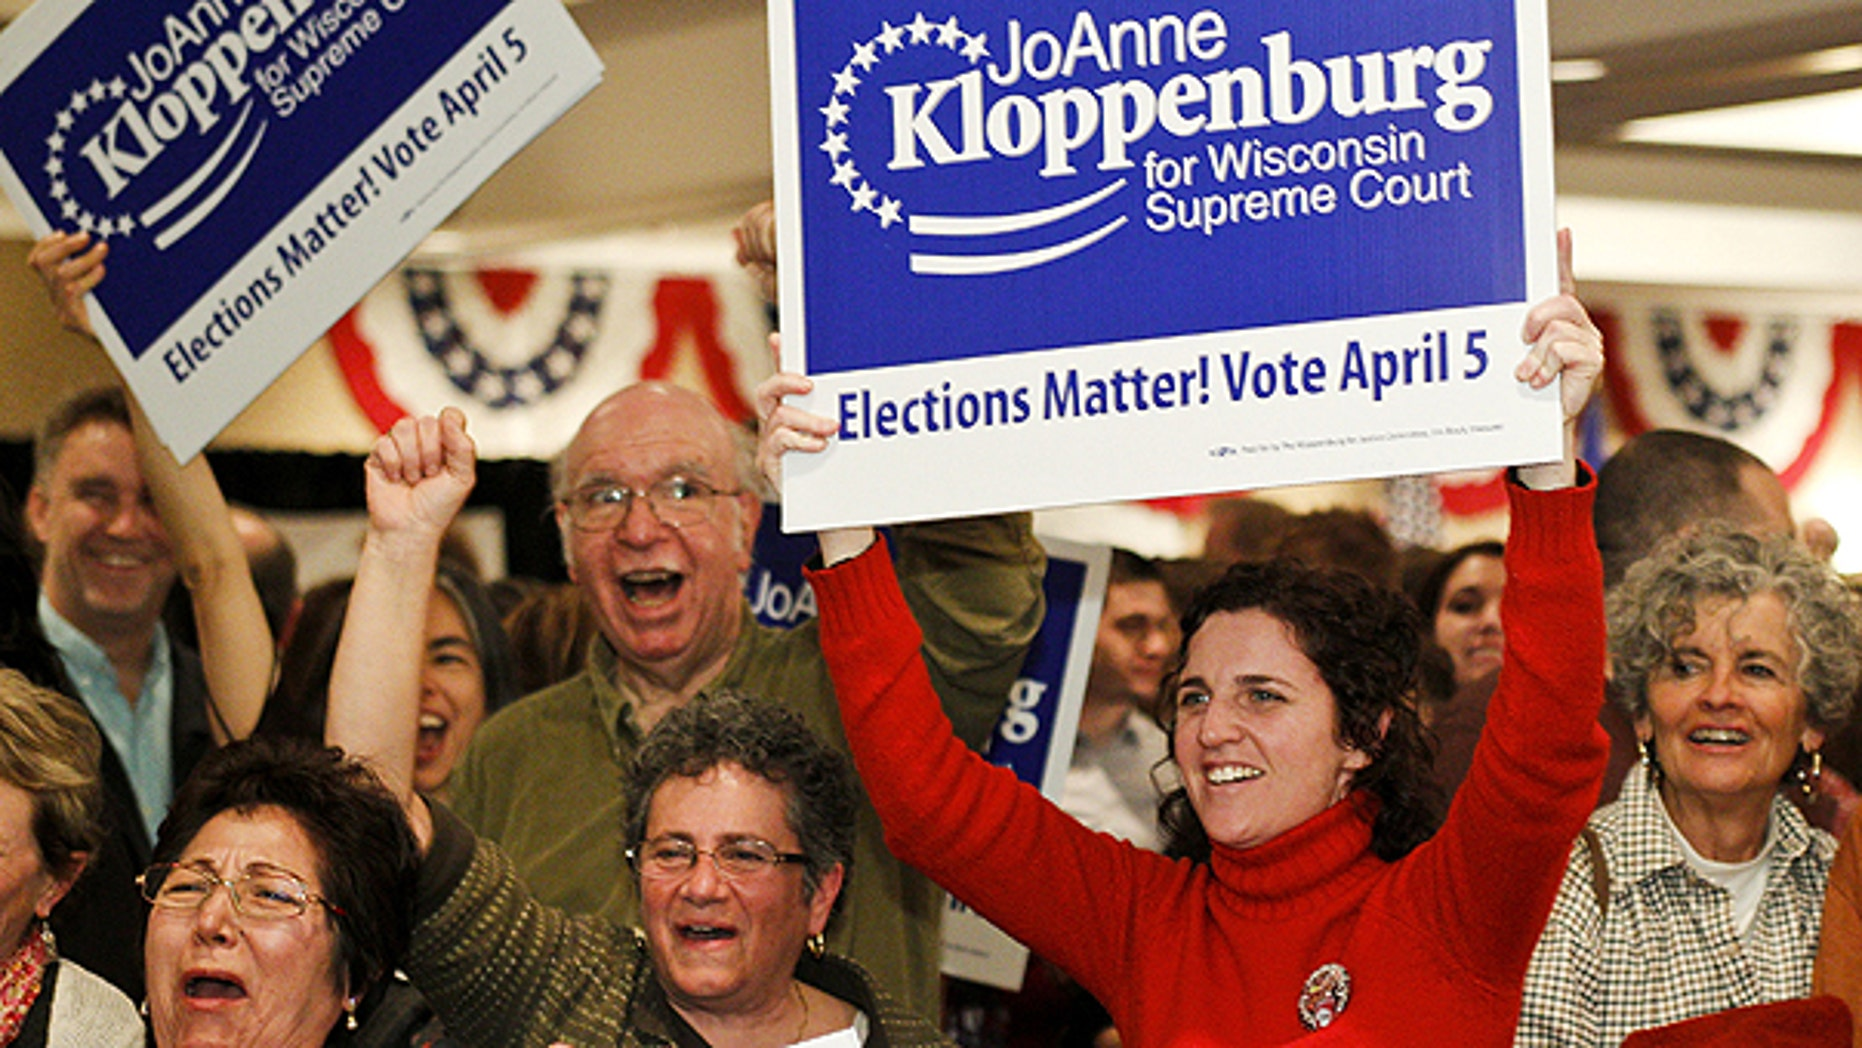 FILE: This April 2011 photo shows supporters for Wisconsin Supreme Court candidate JoAnne Kloppenburg in Madison, Wis. On May 31 Kloppenburg conceded to incumbent Justice David Prosser.